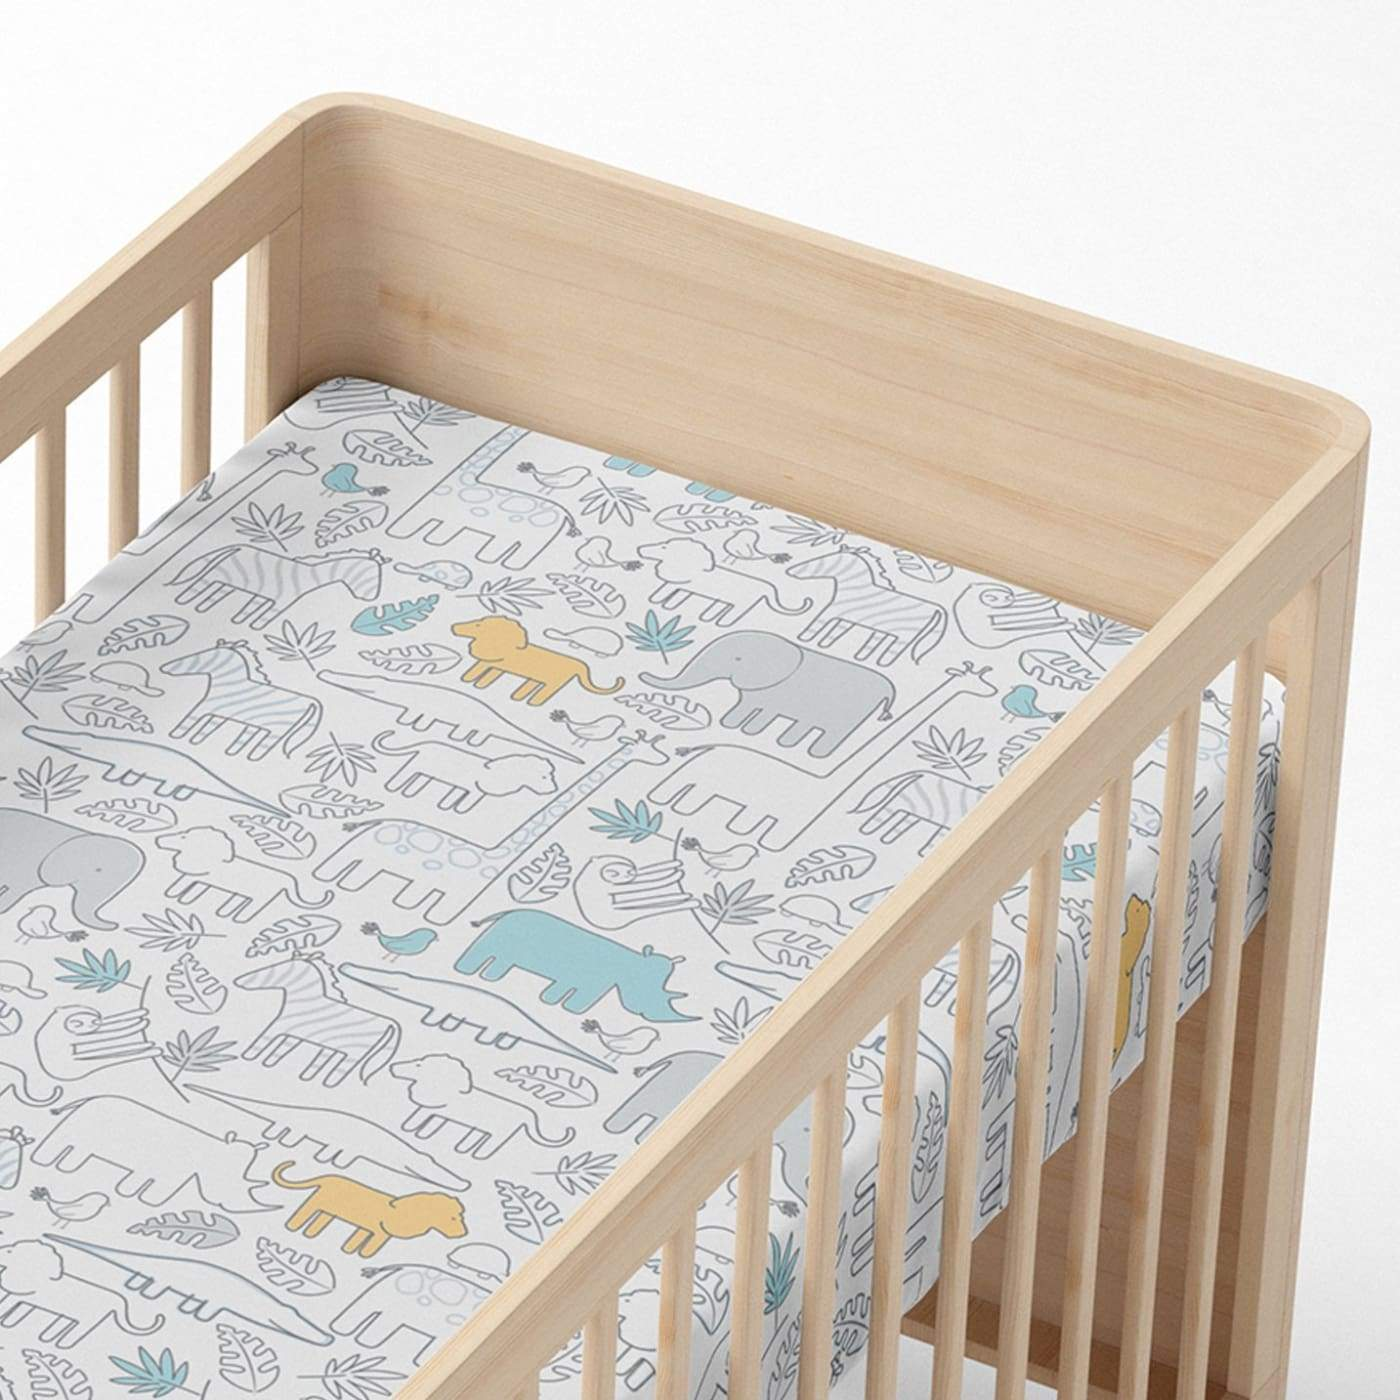 Living Textiles Fitted Sheet - Urban Safari - NURSERY & BEDTIME - COT MANCHESTER